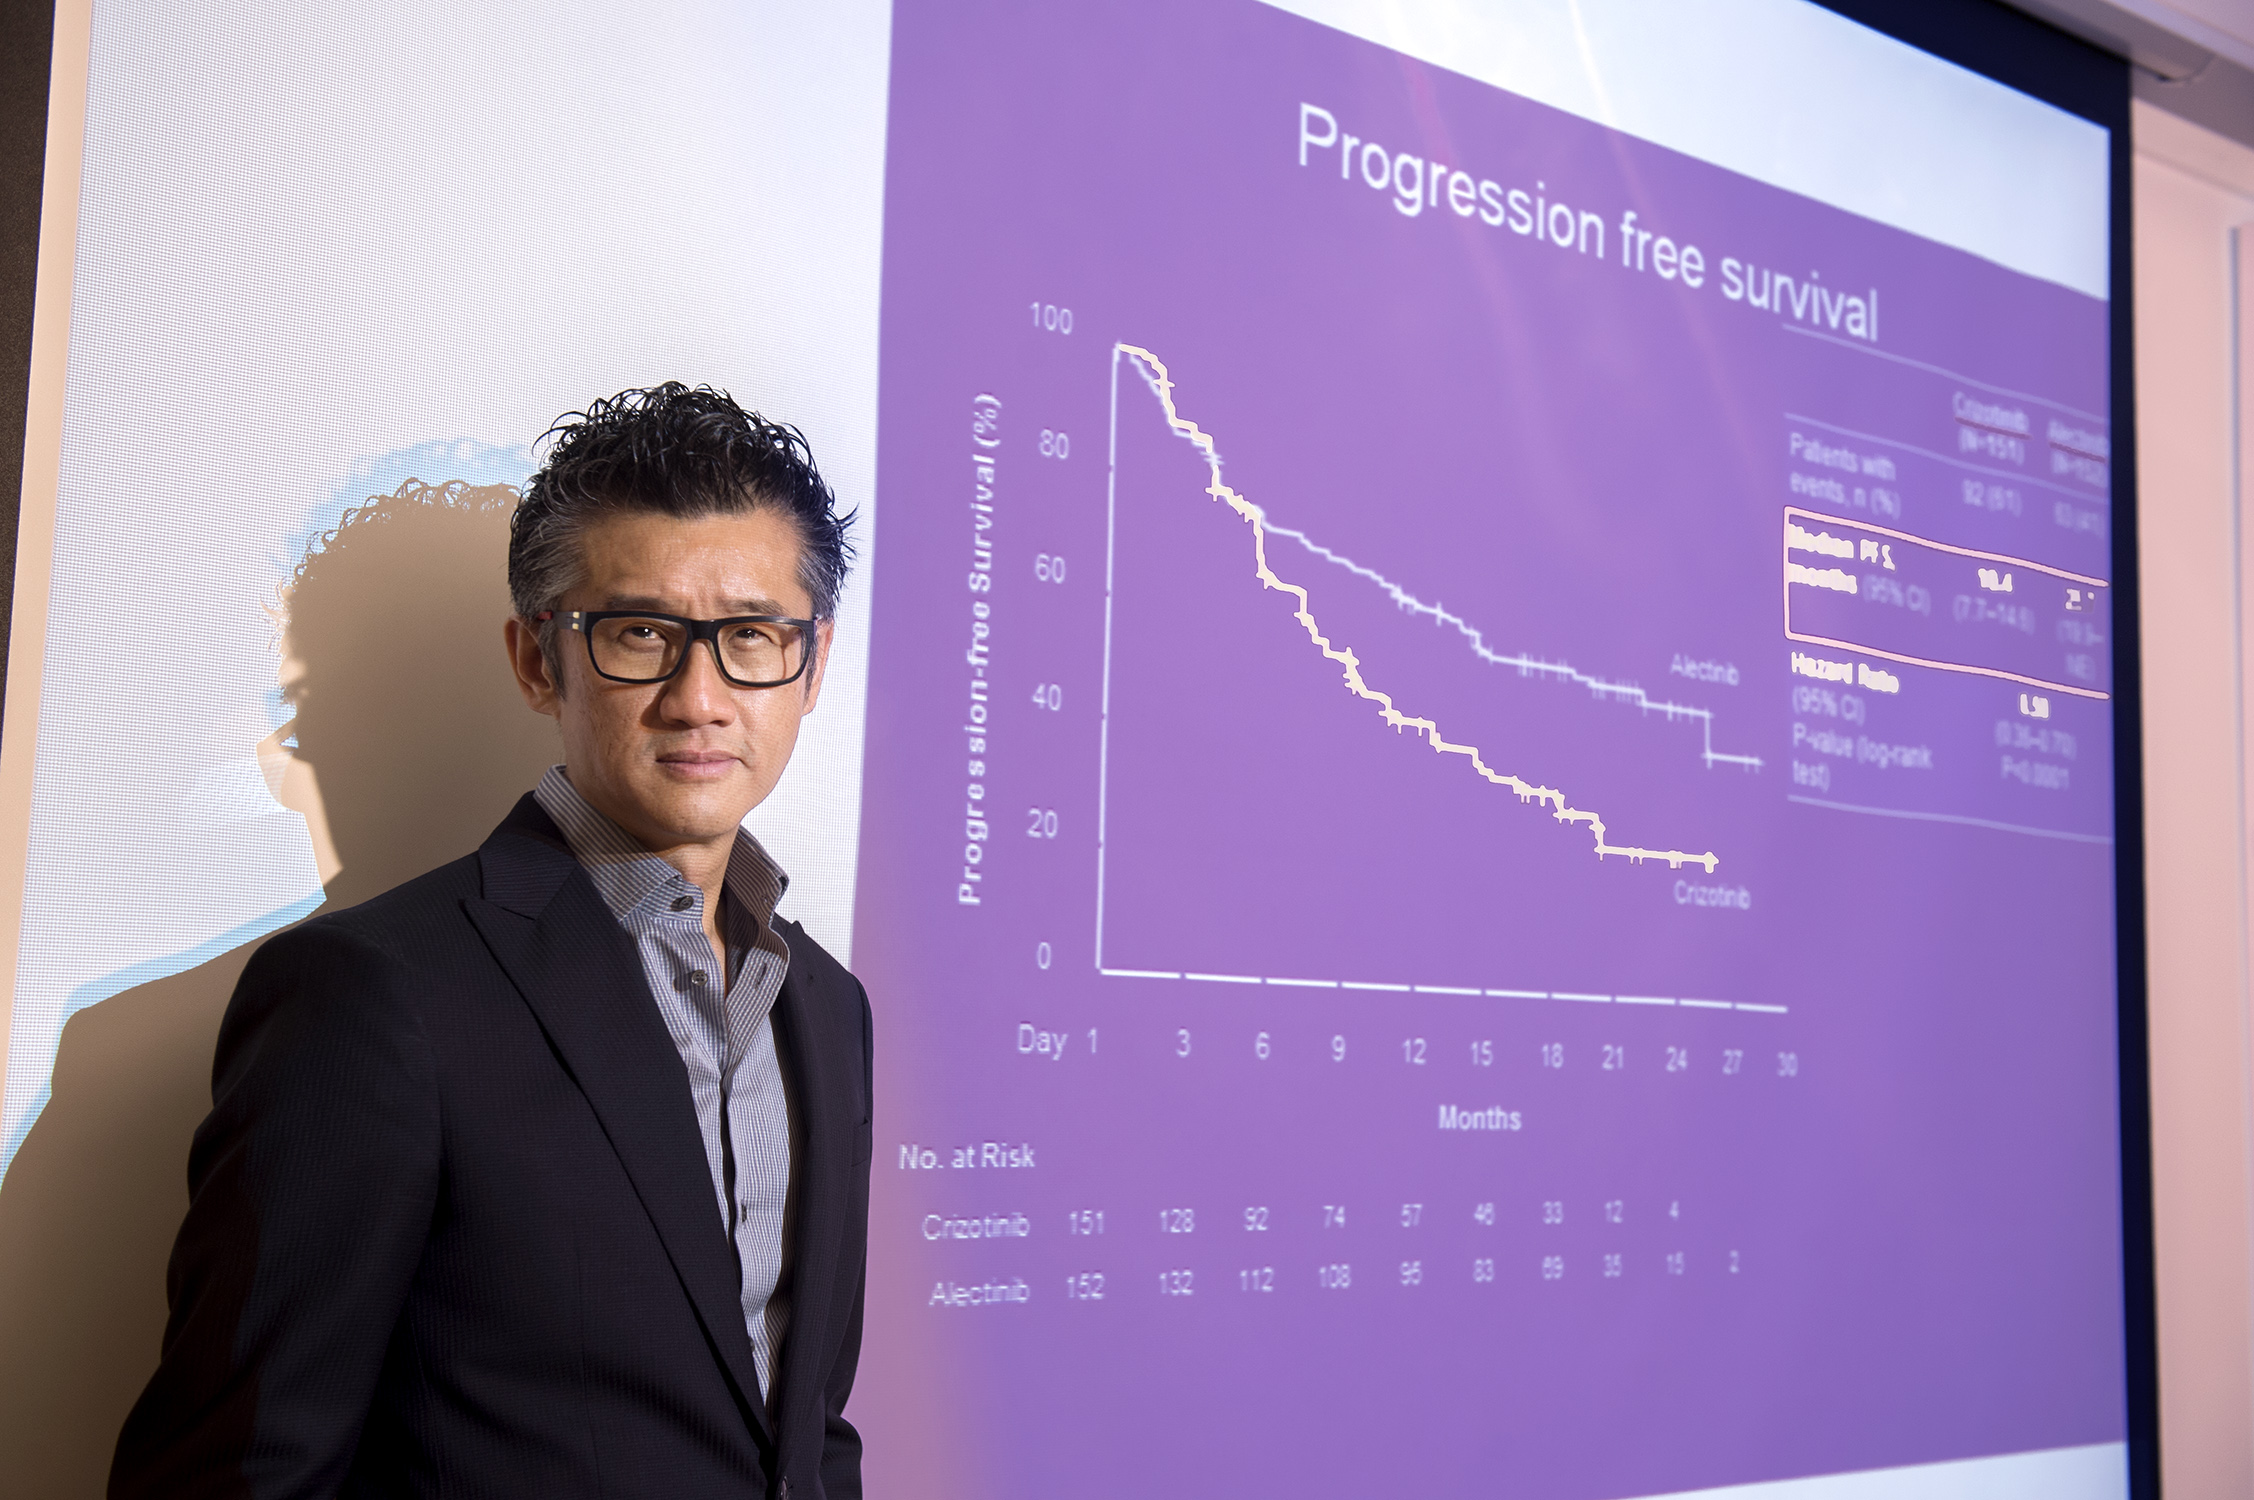 Prof. Tony MOK says that the study has proved that the second-line therapy outperforms the current standard one in first-line treatment for ALK-positive lung cancer, meaning that the first-line use of Alectinib will be a new standard of care for these patients, with the belief that they can live longer and better.